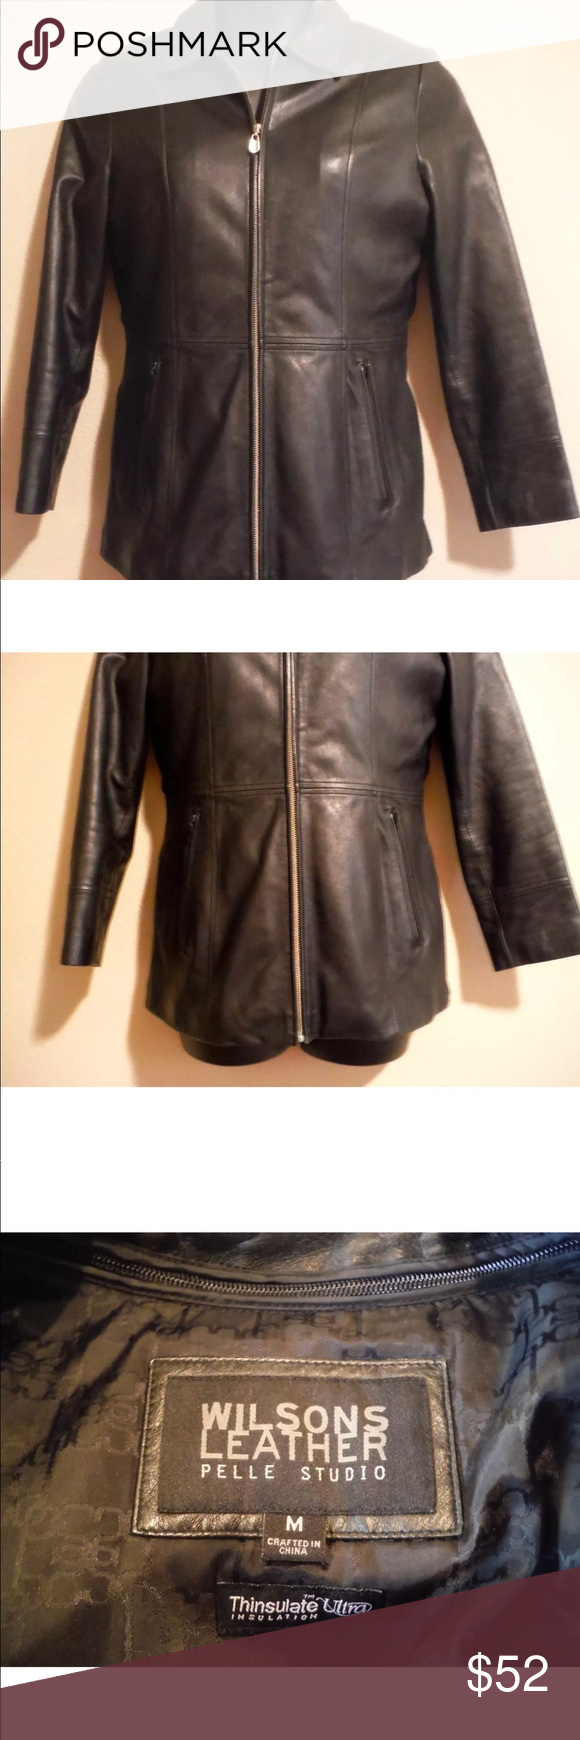 Wilson Leather Pelle Studio Womens Size M Jacket Wilsons